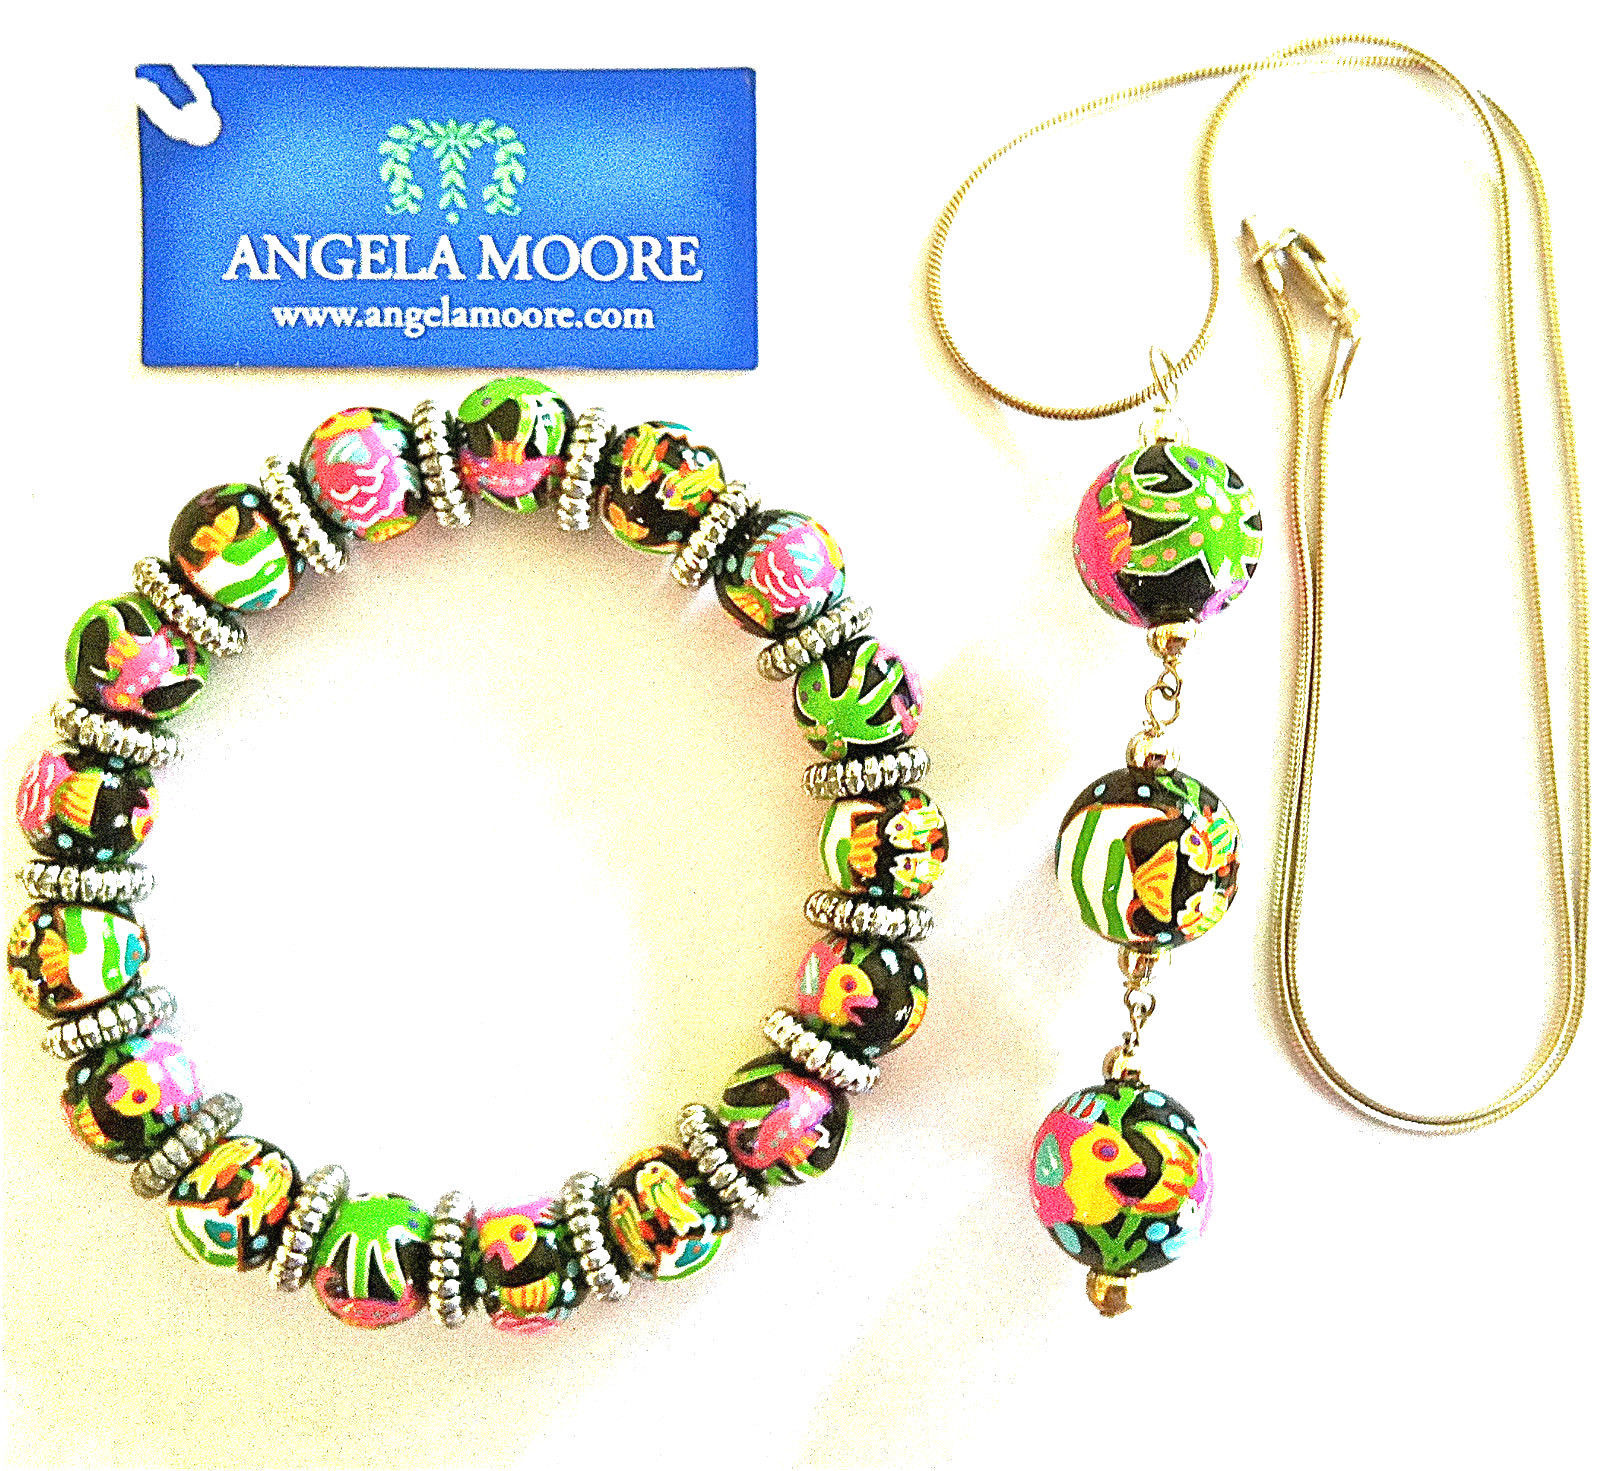 """NWT ANGELA MOORE NECKLACE & BRACELET HOT TROPICS WITH FISH SILVER 18"""" CHAIN"""